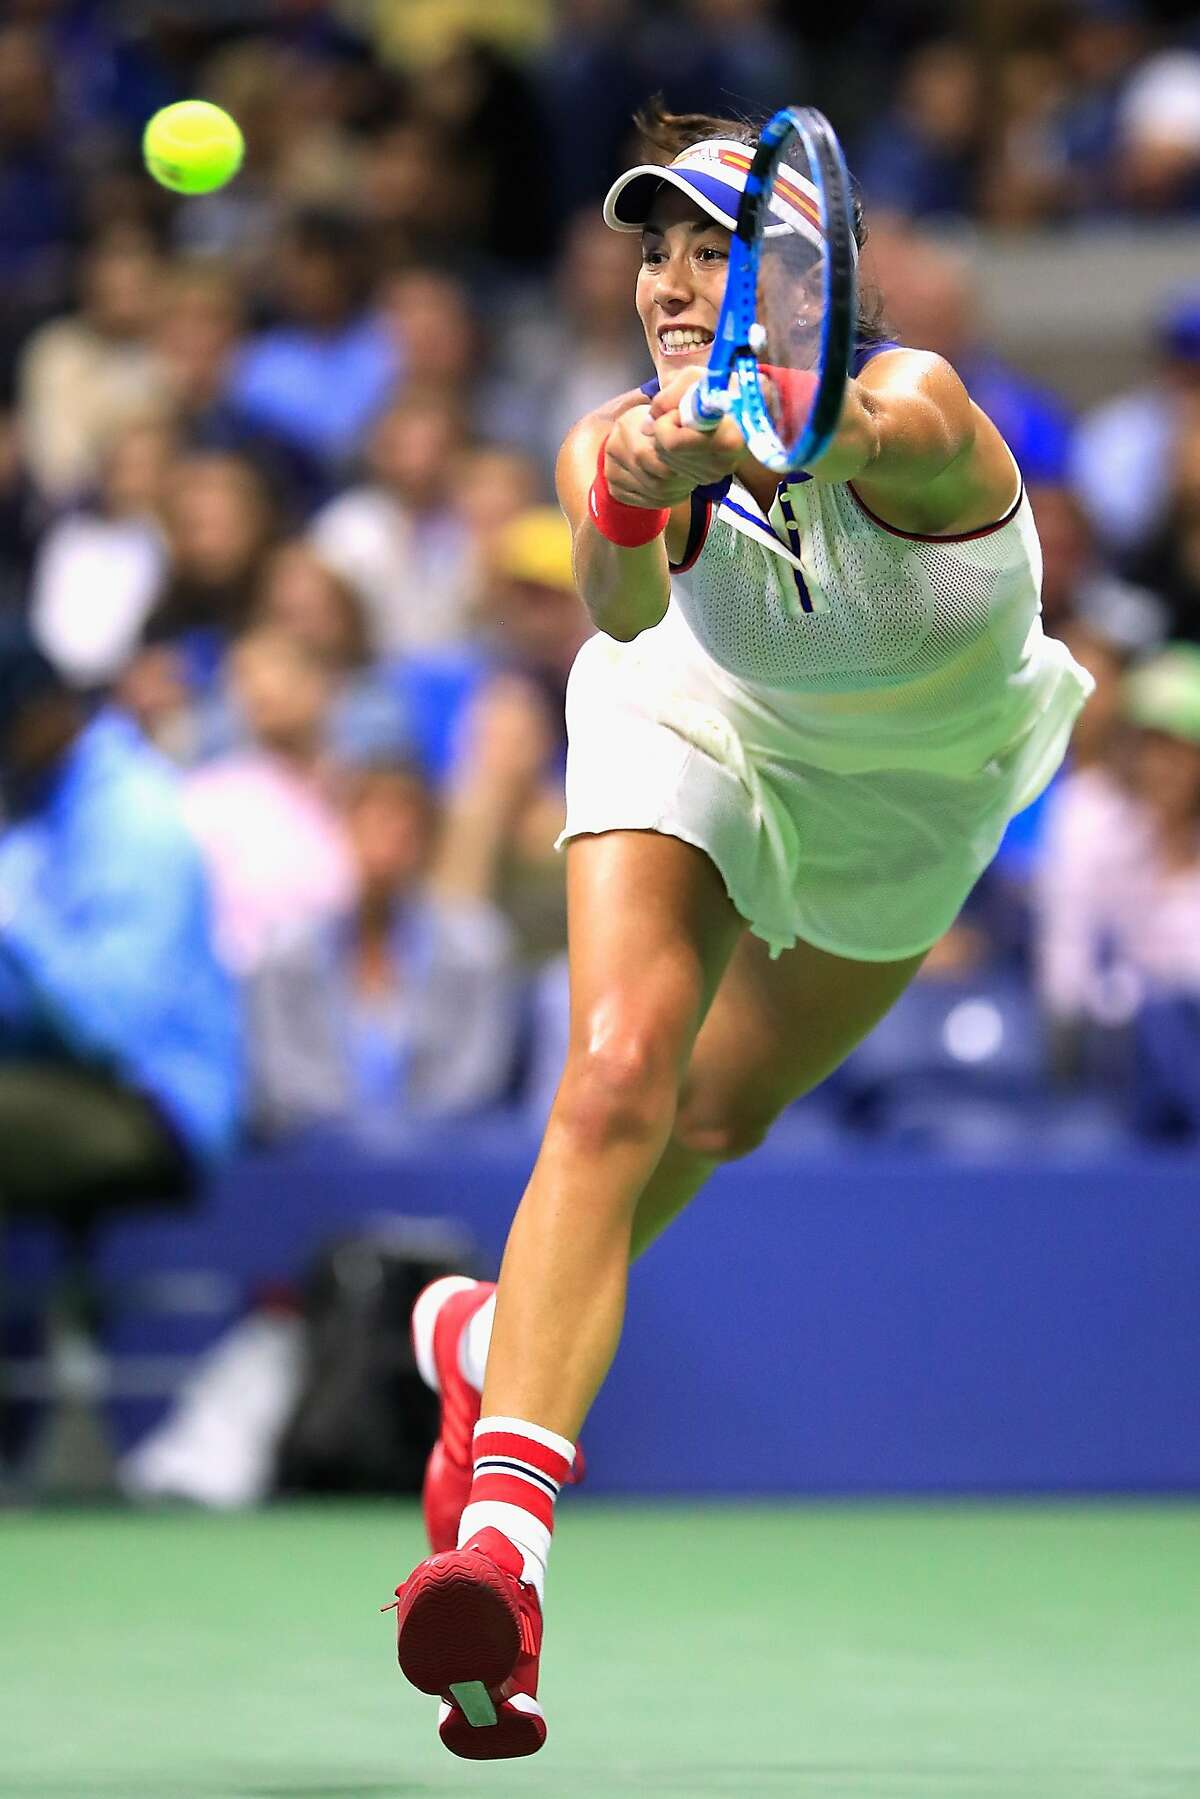 NEW YORK, NY - SEPTEMBER 03: Garbine Muguruza of Spain returns a shot during her women's singles fourth round match against Petra Kvitova of Czech Republic on Day Seven of the 2017 US Open at the USTA Billie Jean King National Tennis Center on September 3, 2017 in the Flushing neighborhood of the Queens borough of New York City. (Photo by Steven Ryan/Getty Images)